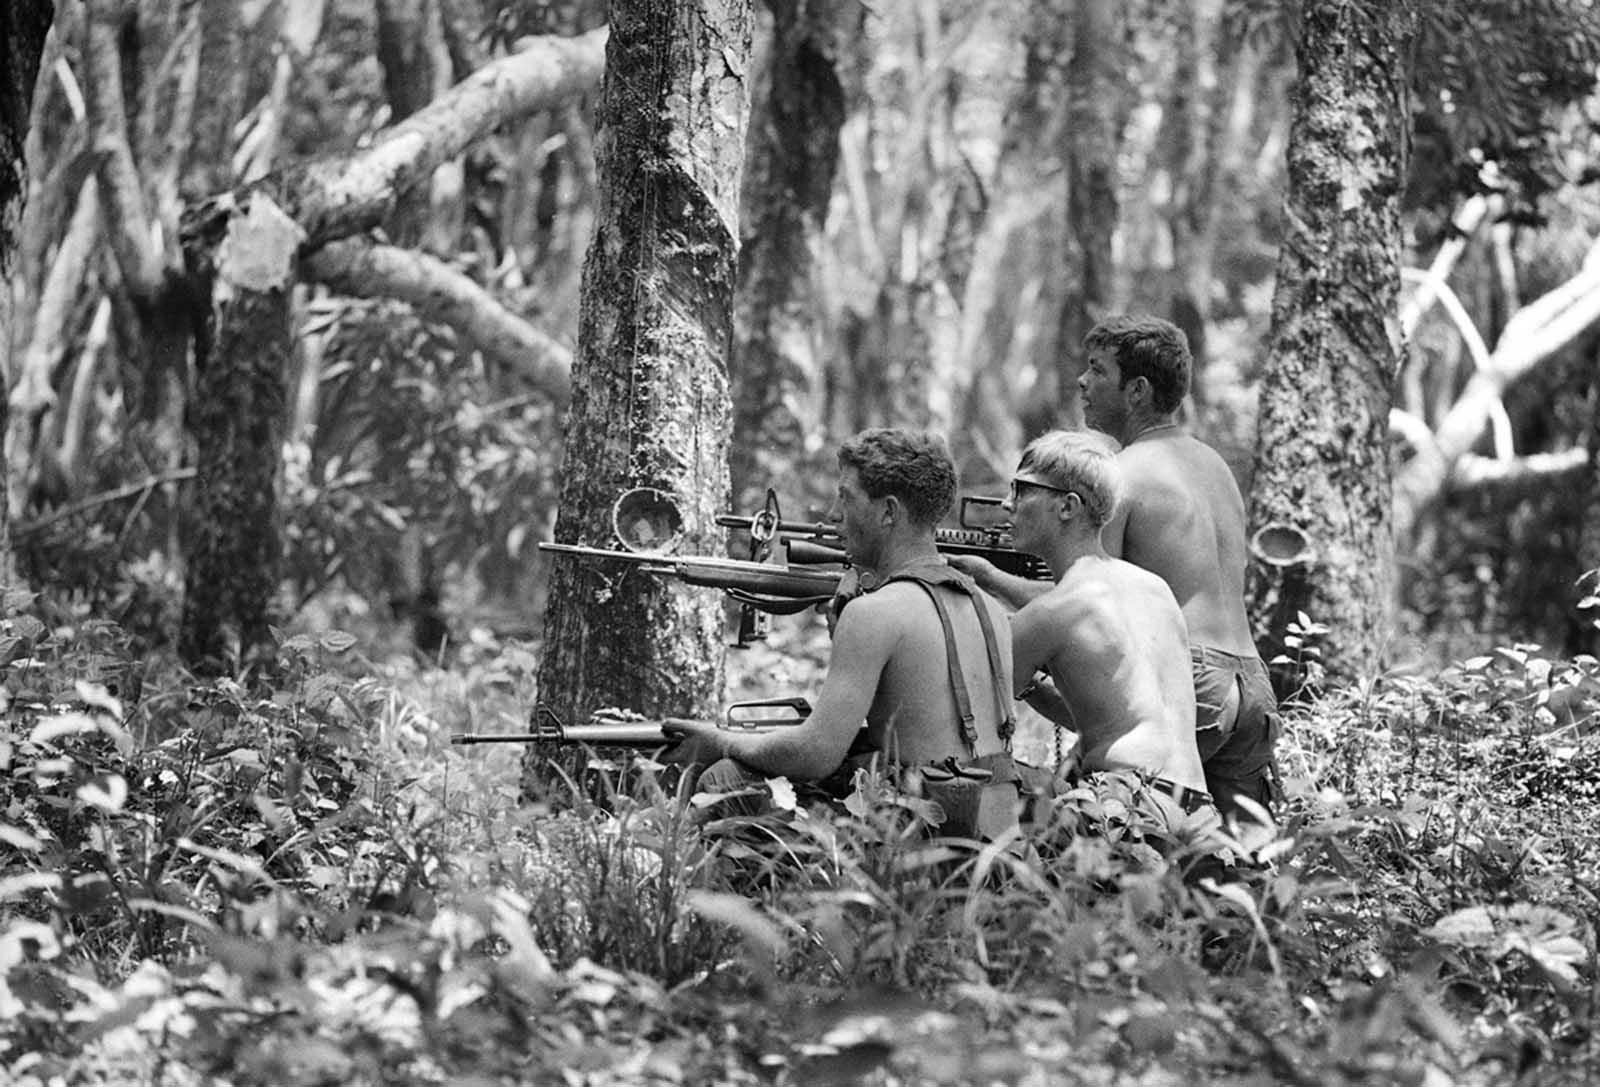 Three shirtless U.S. soldiers advance through the Mimot rubber plantation in the Fishhook region of Cambodia, on May 4, 1970, taking aim at a fleeing suspect. The rubber plantation, one of the largest in Indochina, had been in operation until just a few days earlier.